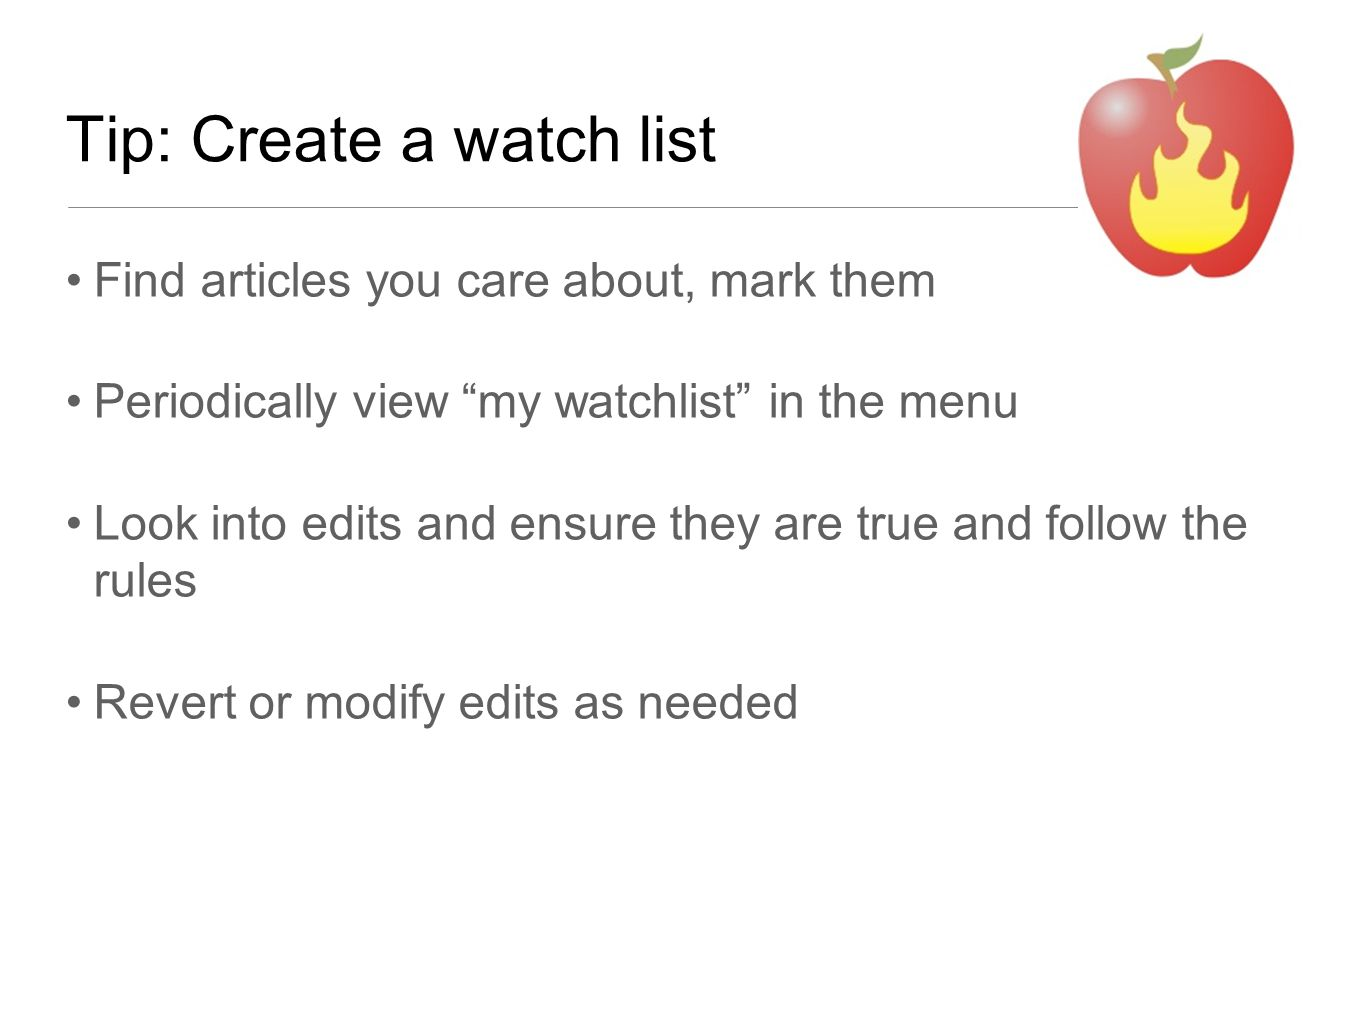 Tip: Create a watch list Find articles you care about, mark them Periodically view my watchlist in the menu Look into edits and ensure they are true and follow the rules Revert or modify edits as needed